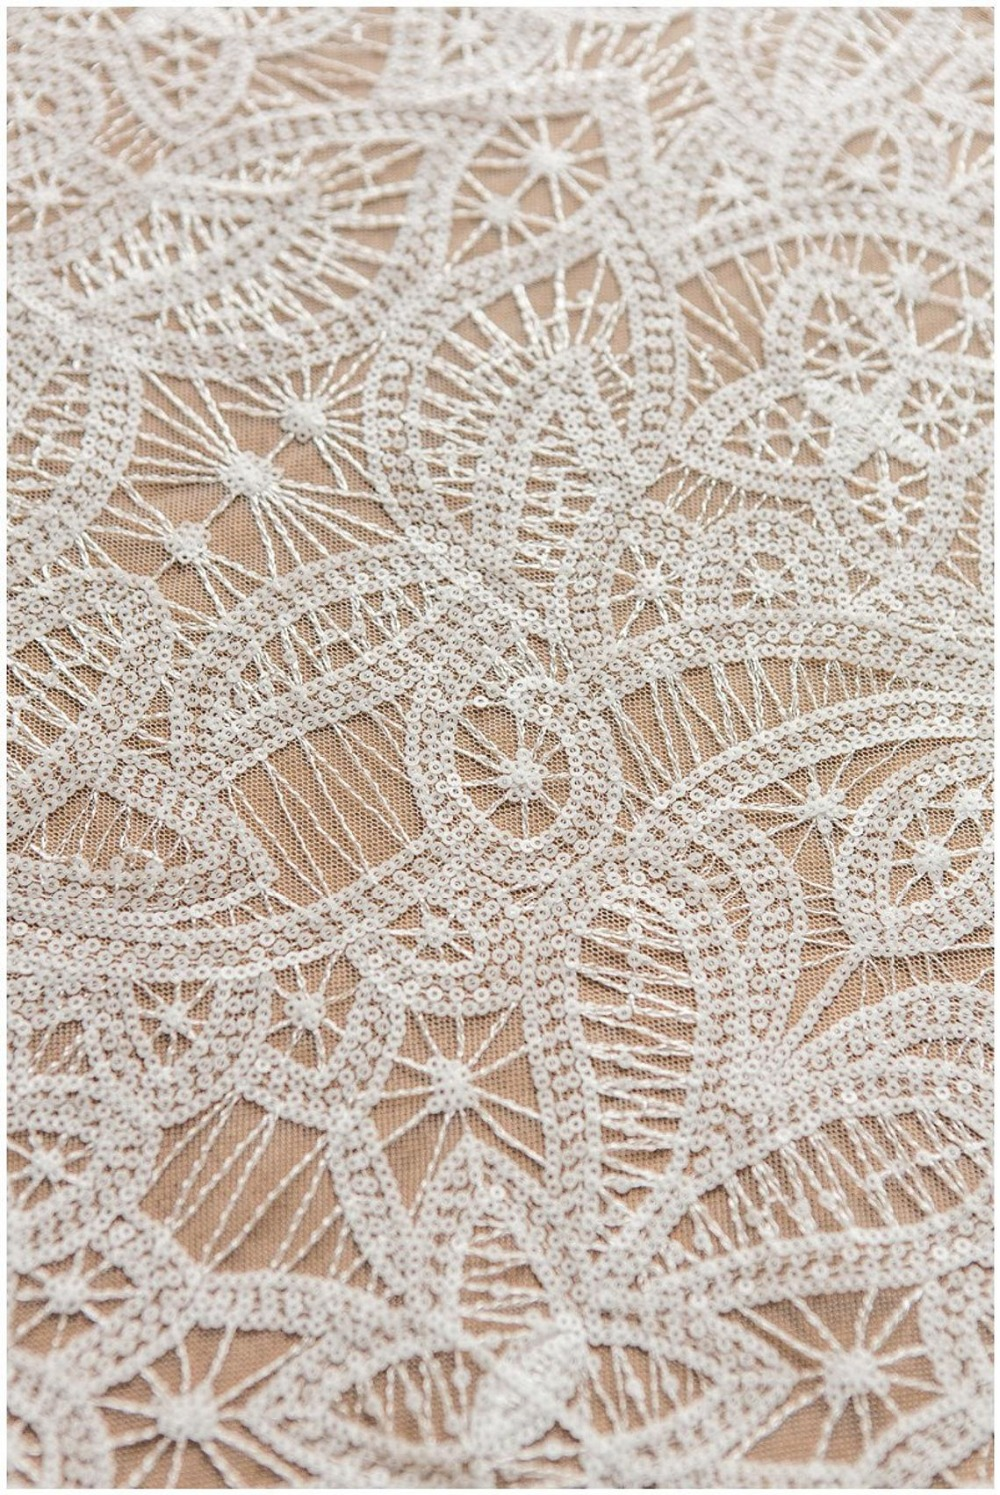 1 yard Modern geometric lace fabric with off white sequins, bridal fabric, wedding dress sequins